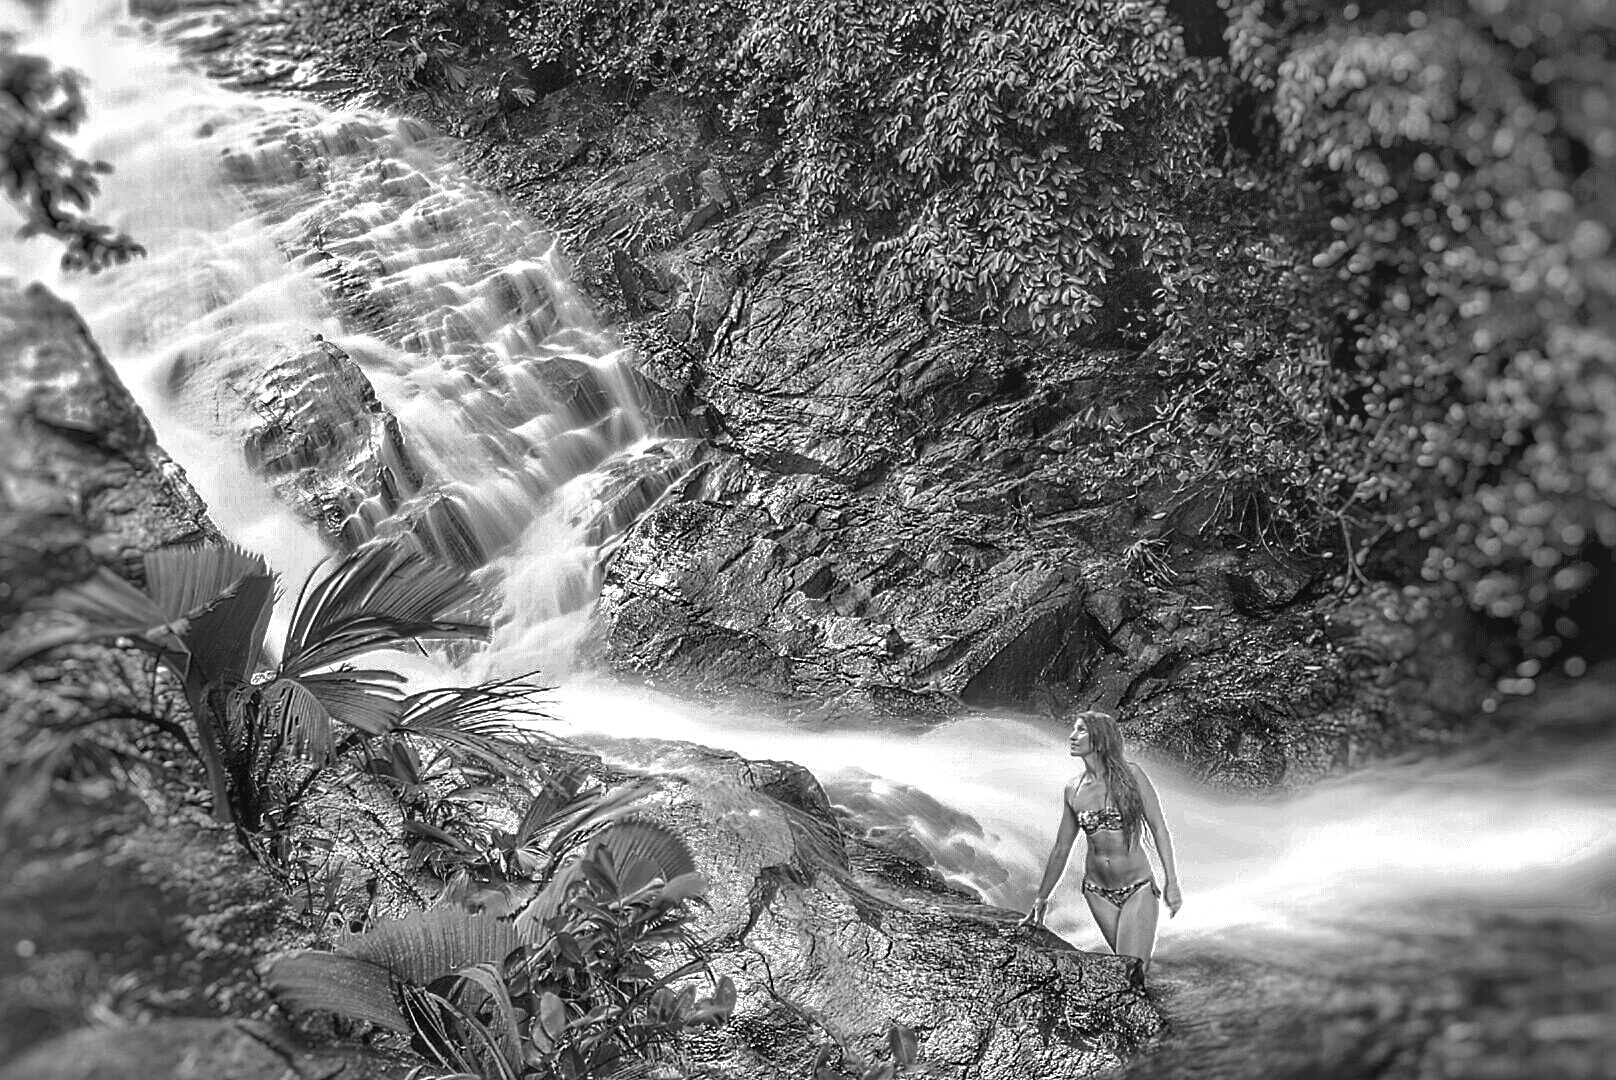 Waterfall b/w by Artur Sulainis